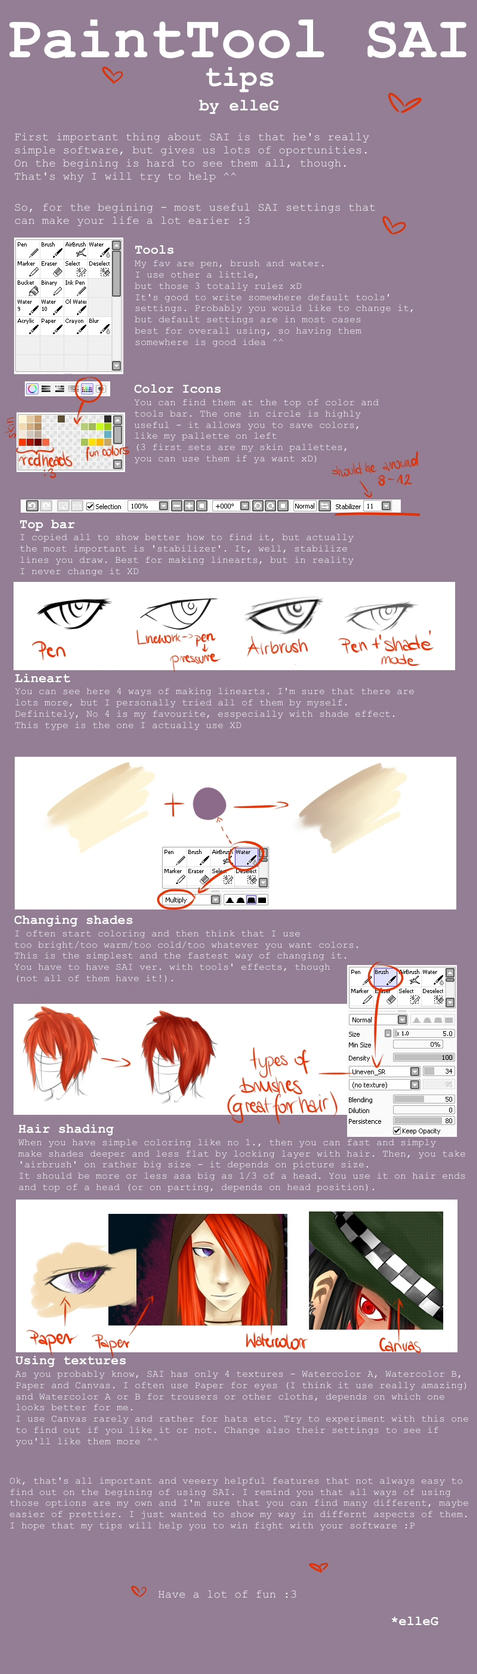 SAI tips by Little-Groove-Girl